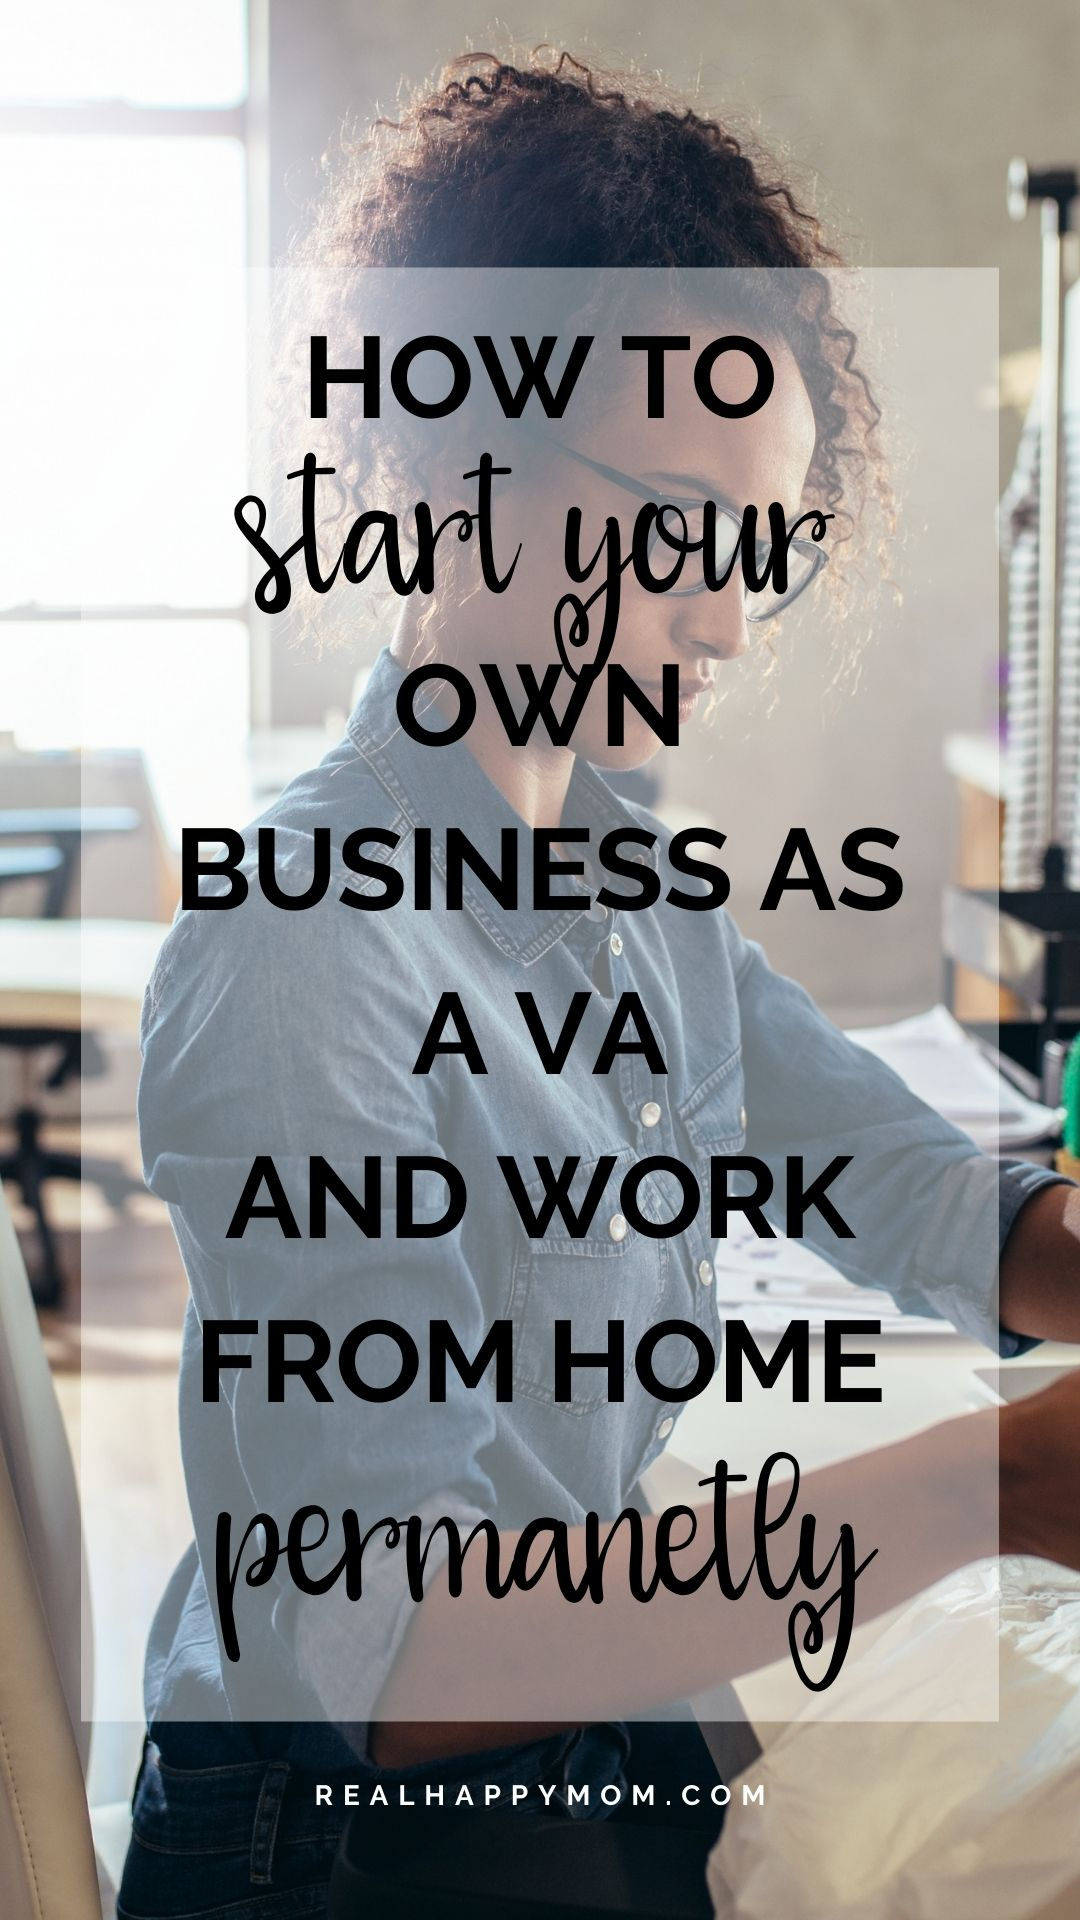 How to Start Your Own Business as a VA - And Work From Home Permanently